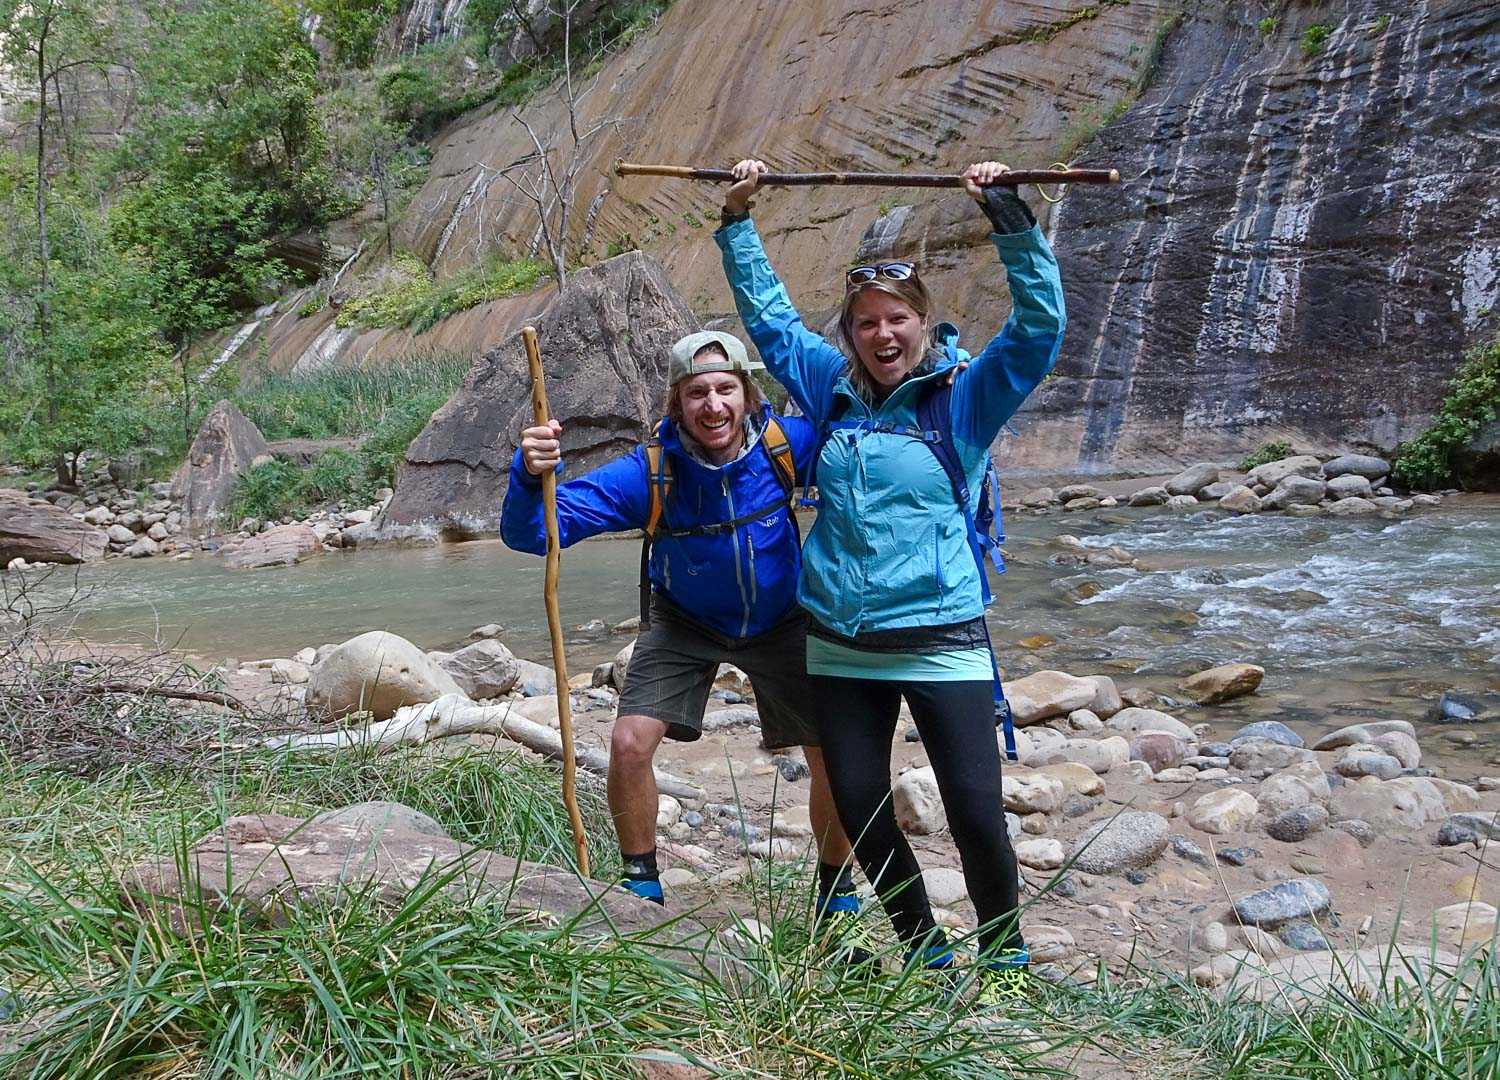 The river trolls of the Zion Narrows!